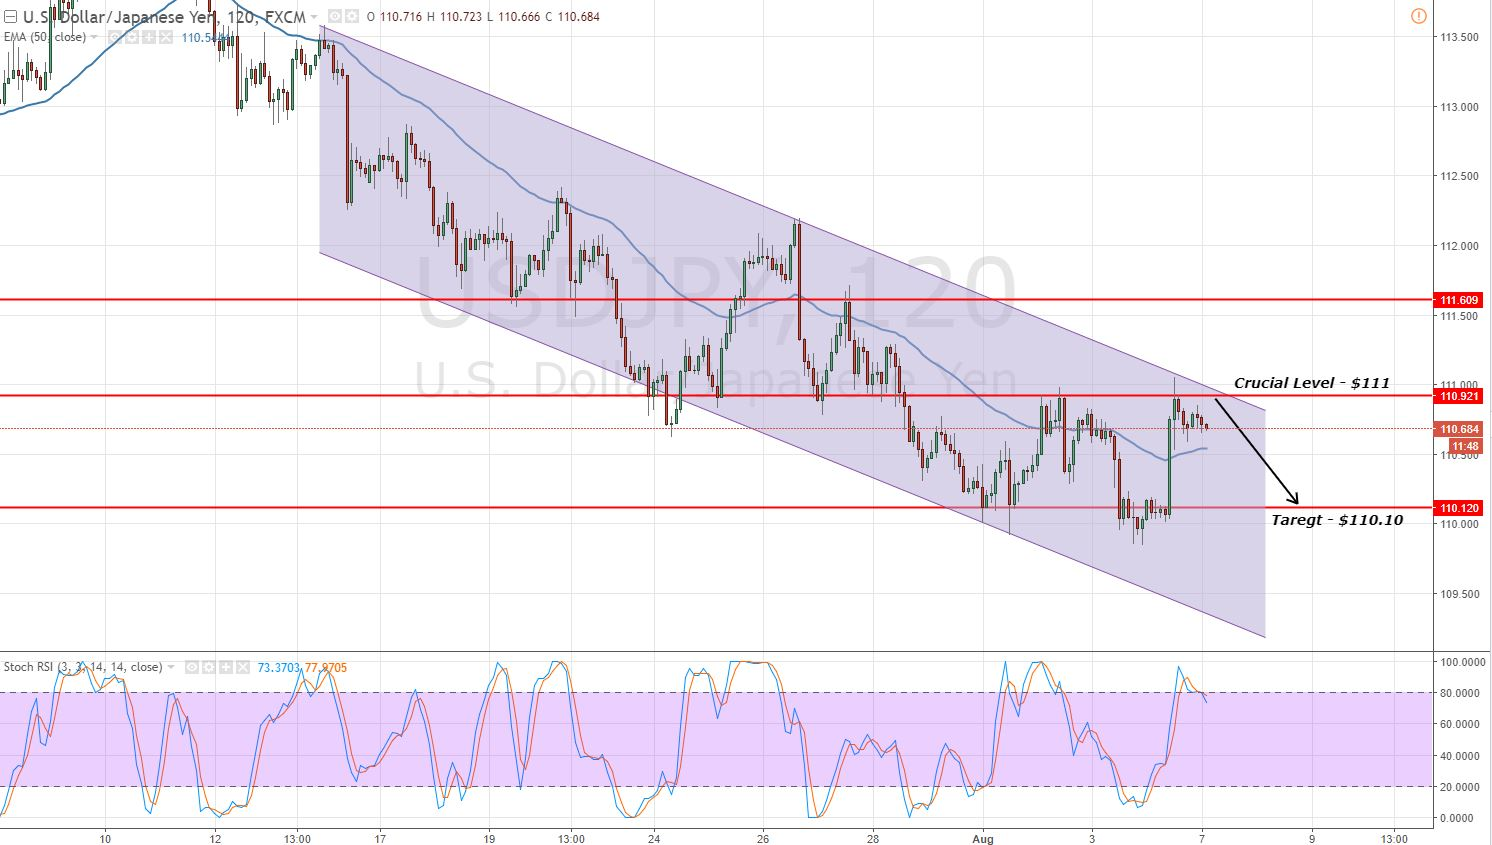 USDJPY - Bearish Channel & Double Top Resistance